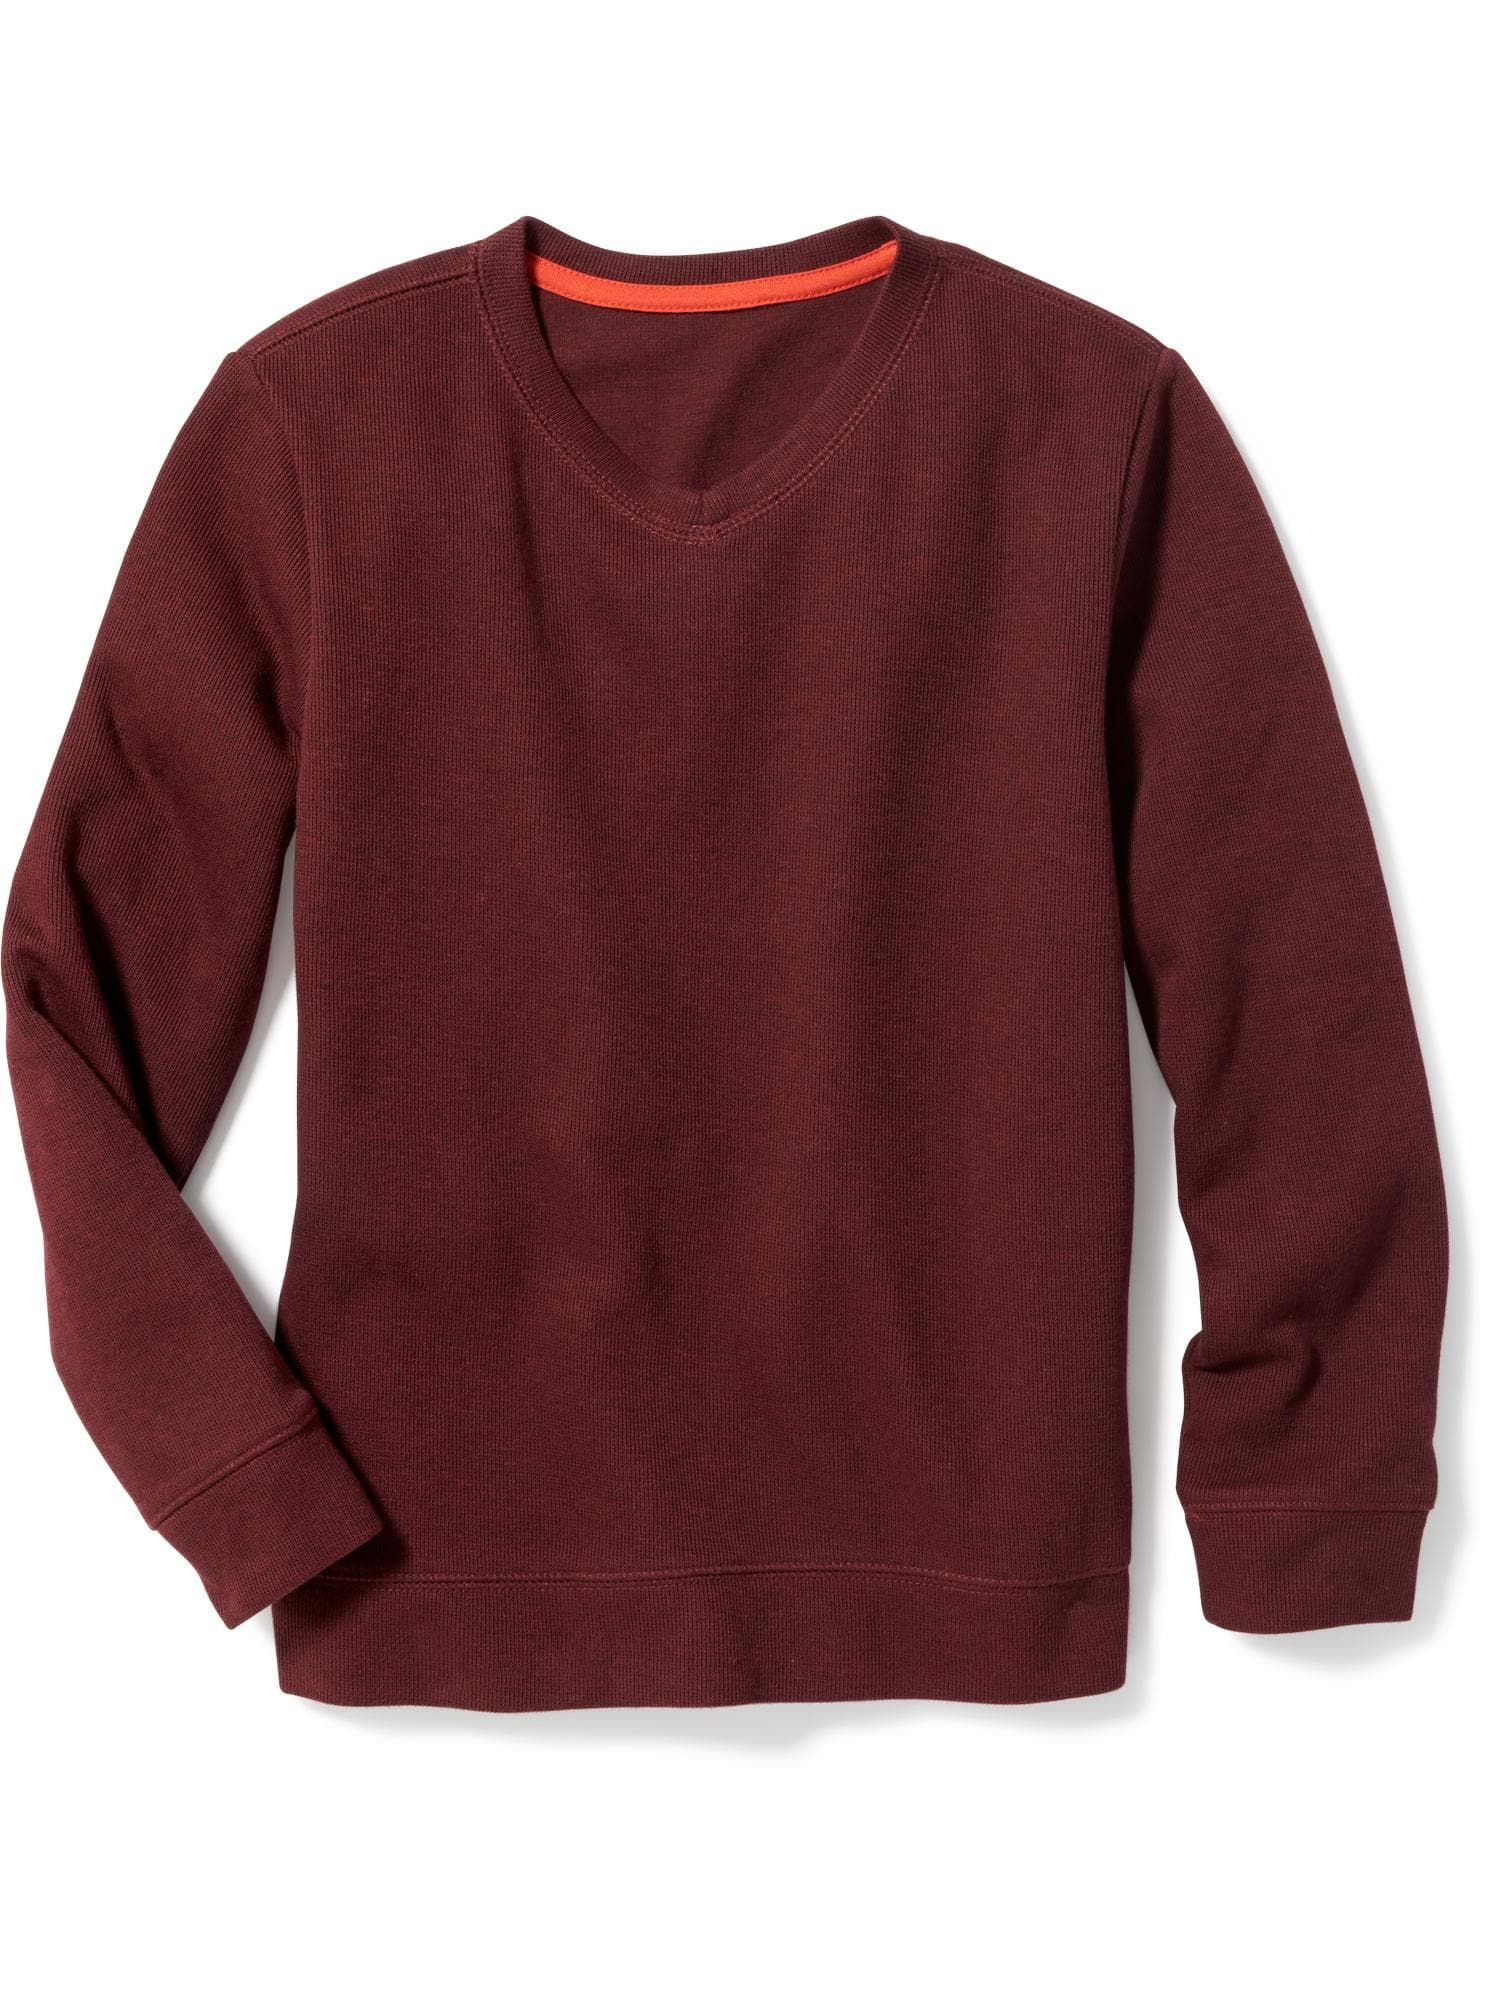 Old Navy 1999 Photo Ideas Pinterest Boys Sweaters Boys And